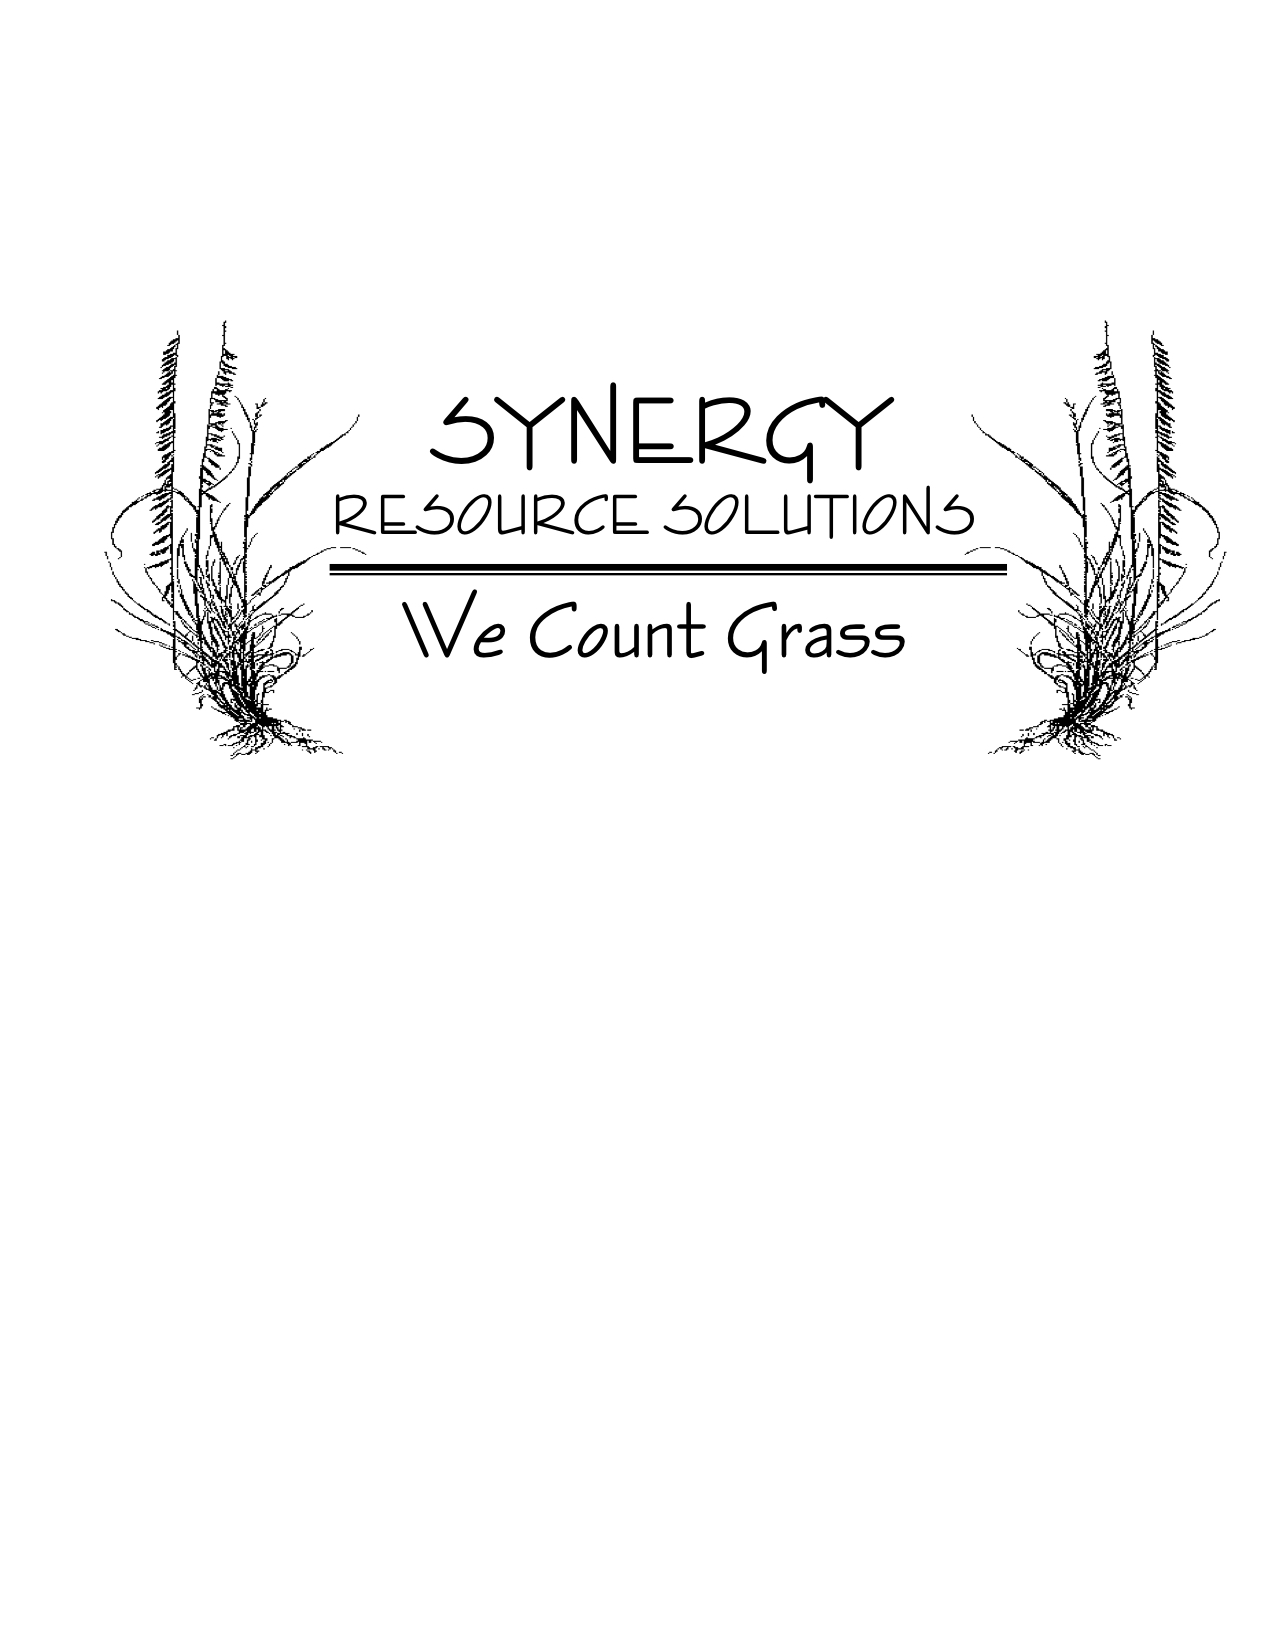 synergy logo no oval.jpg